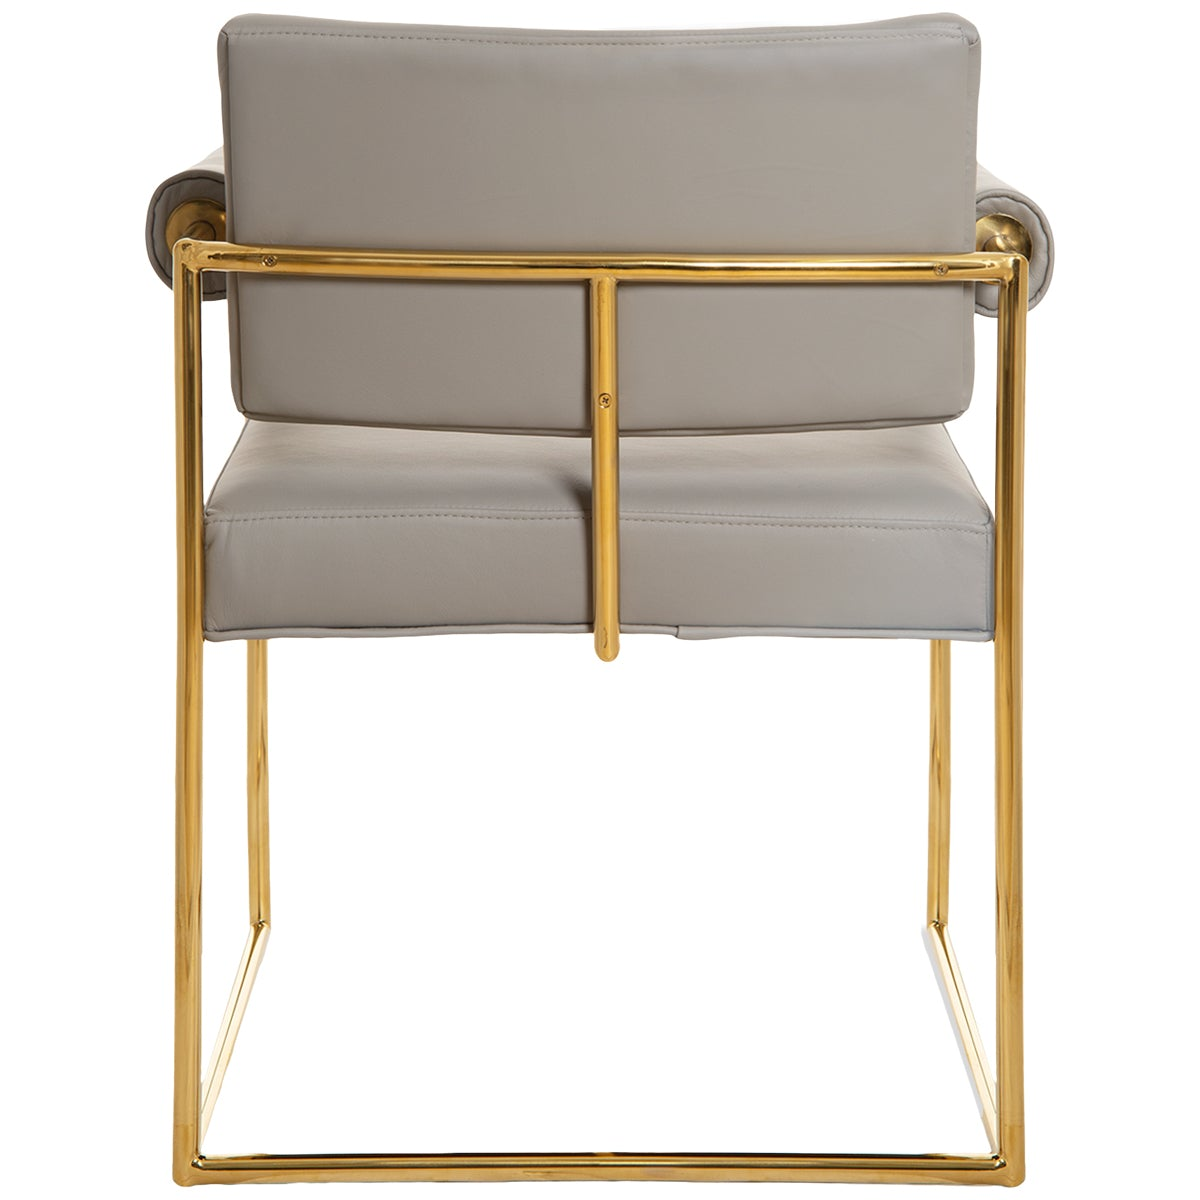 Remarkable Sydney Dining Chair Modshop Andrewgaddart Wooden Chair Designs For Living Room Andrewgaddartcom